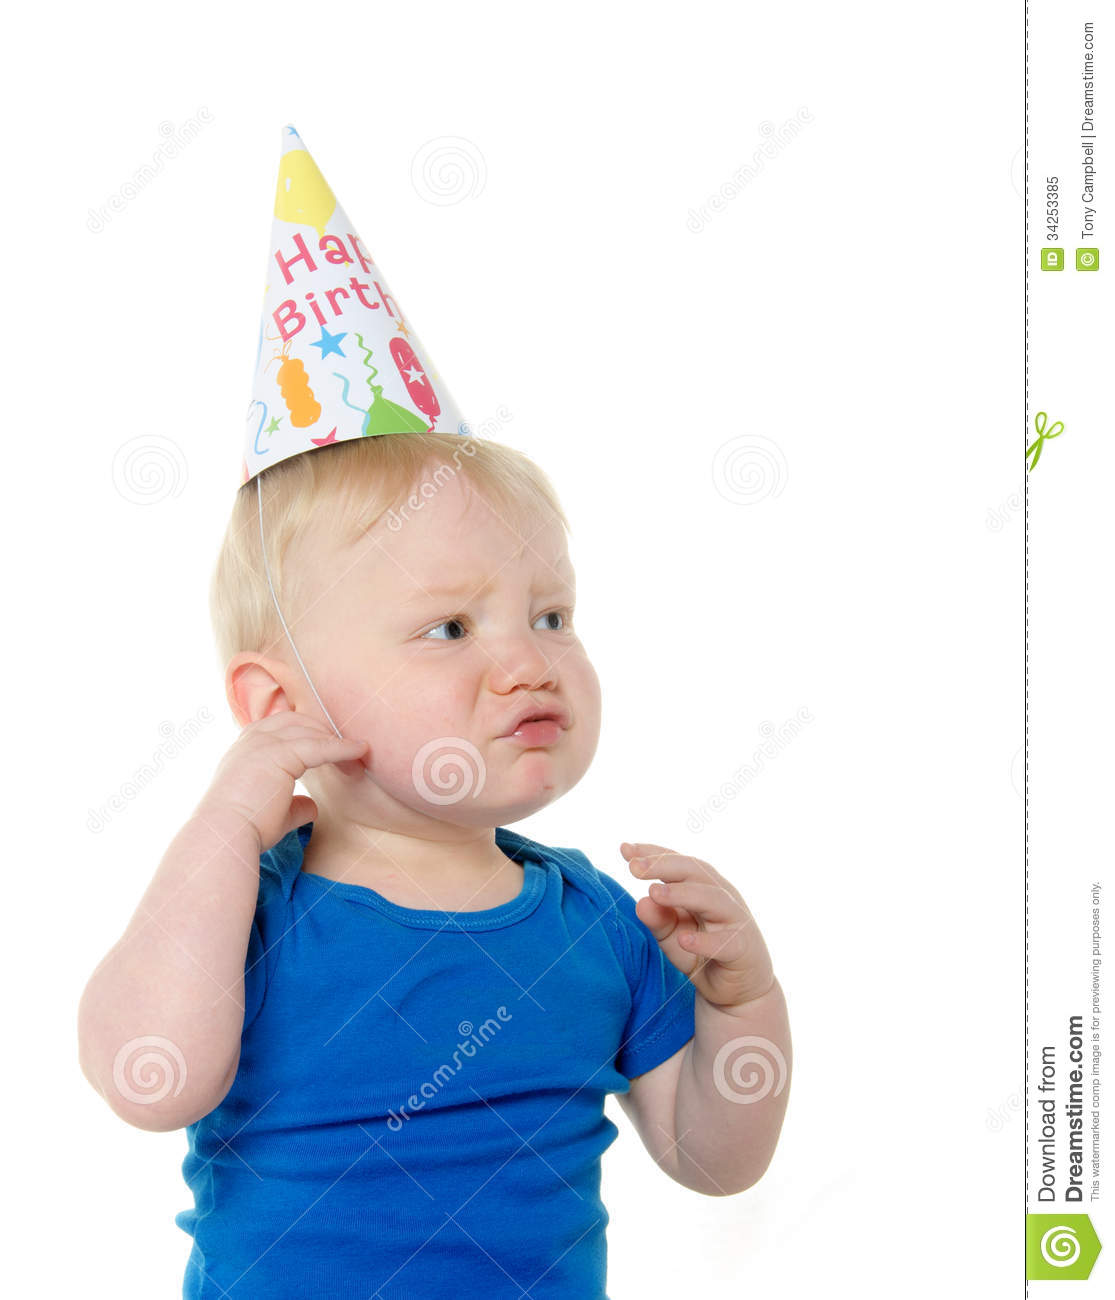 Cute 18 Month Old Baby Boy With Blond Hair And Blue Shirt Crying While Wearing A Happy Birthday Hat On White Background